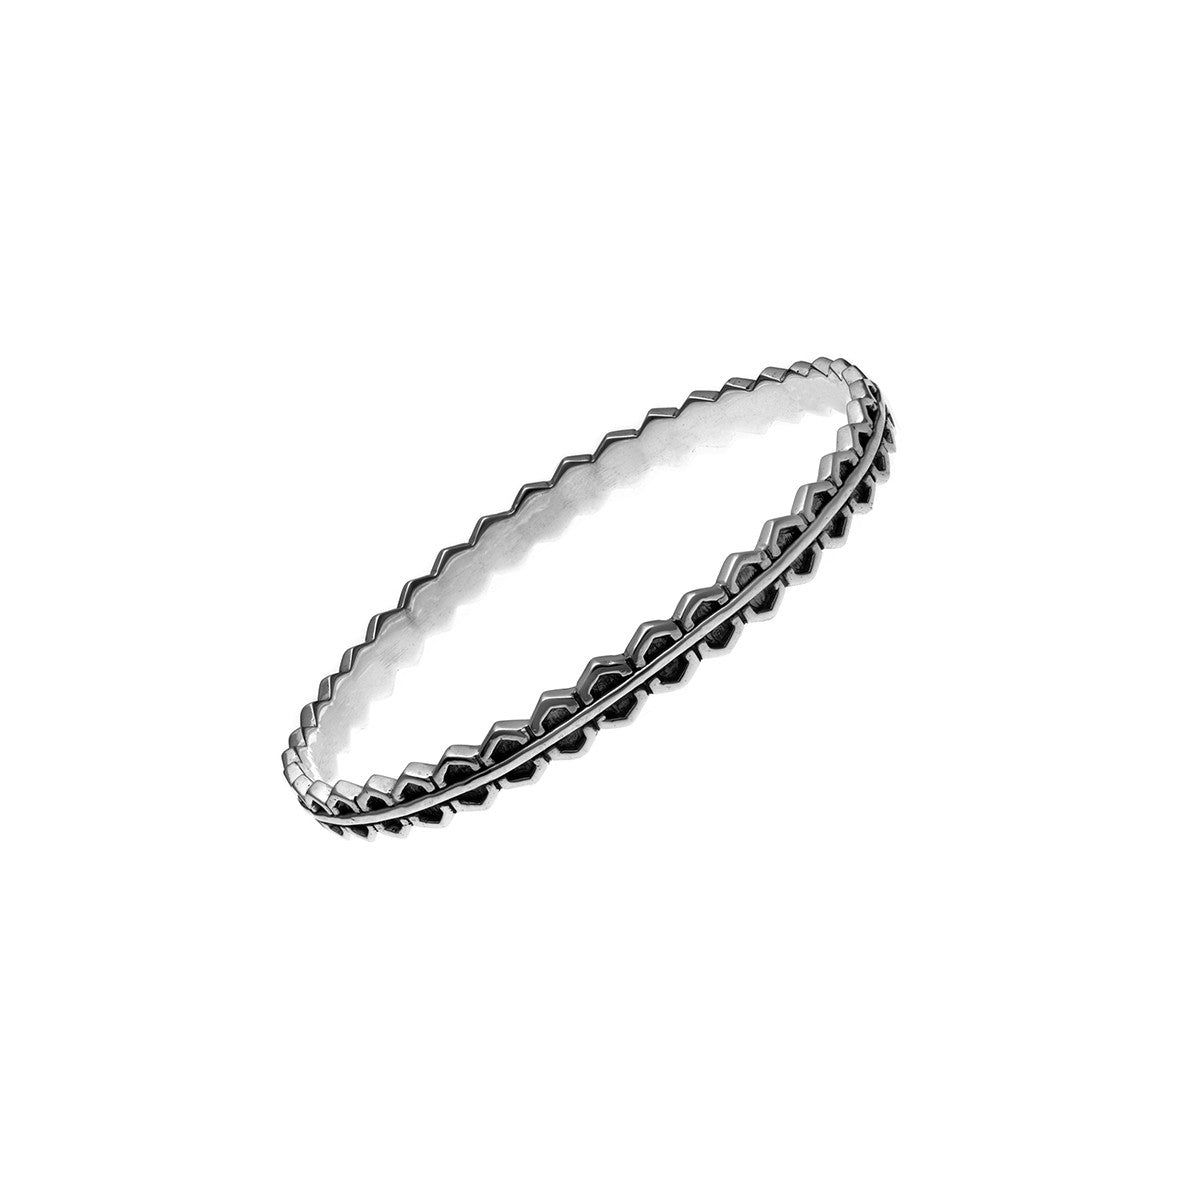 Elements Fire Sterling Silver Bangle - Cynthia Gale New York Jewelry